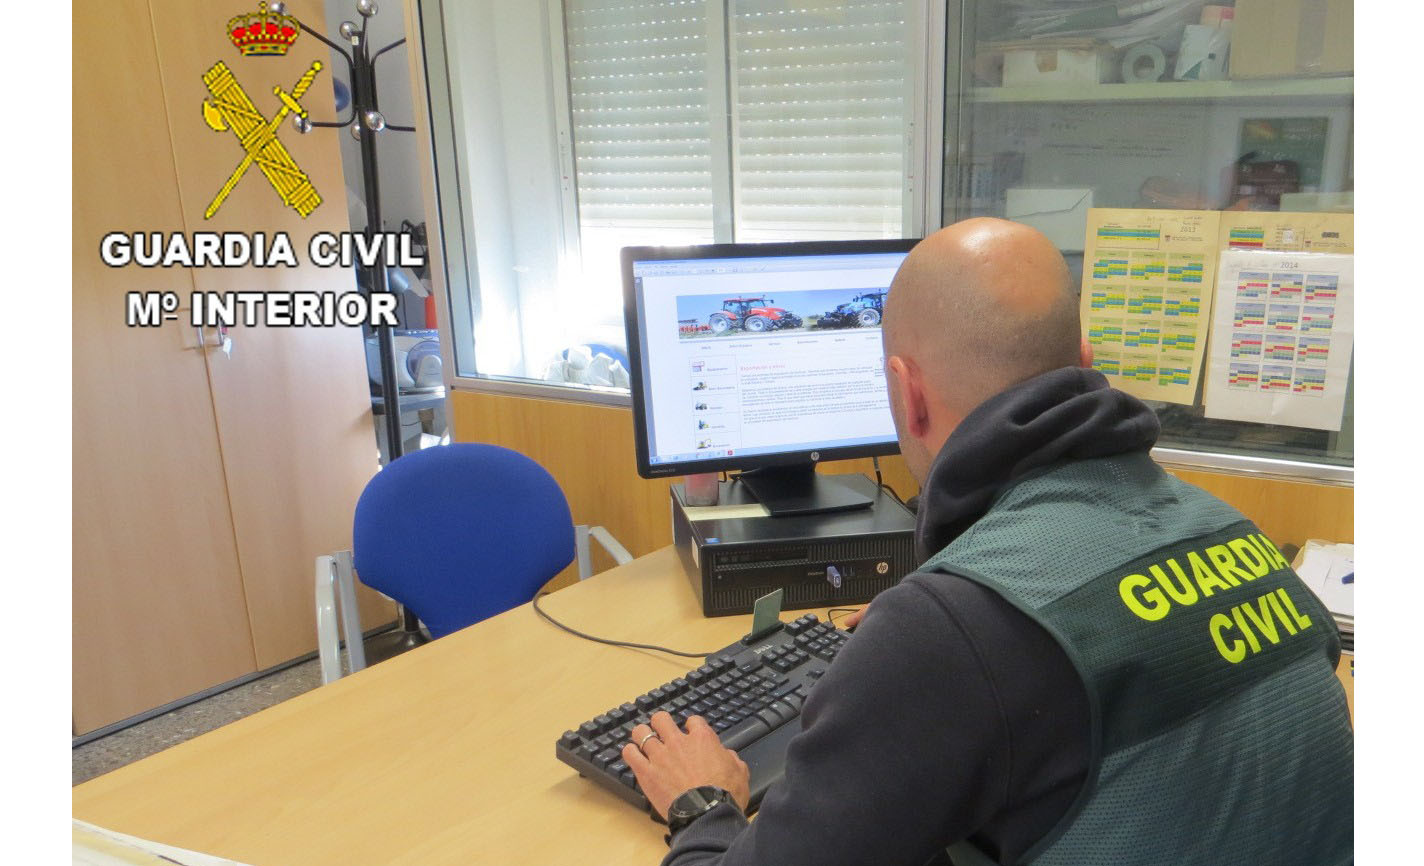 guardia civil foto